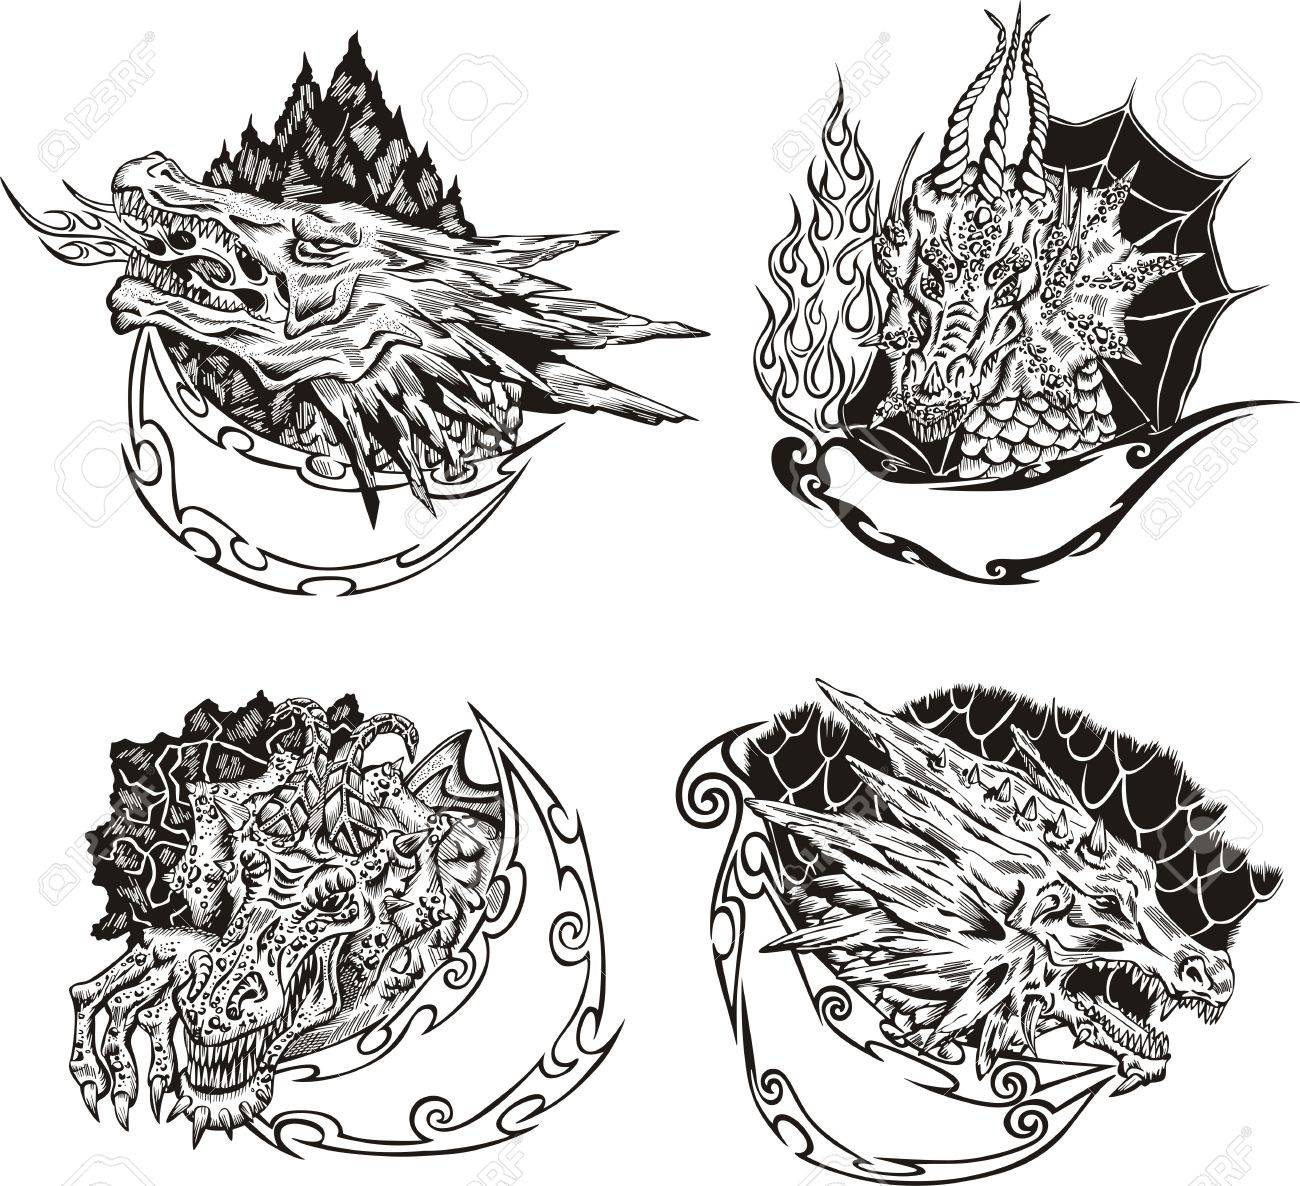 Decorative templates with dragon heads for mascot design. Stock Vector - 17946235